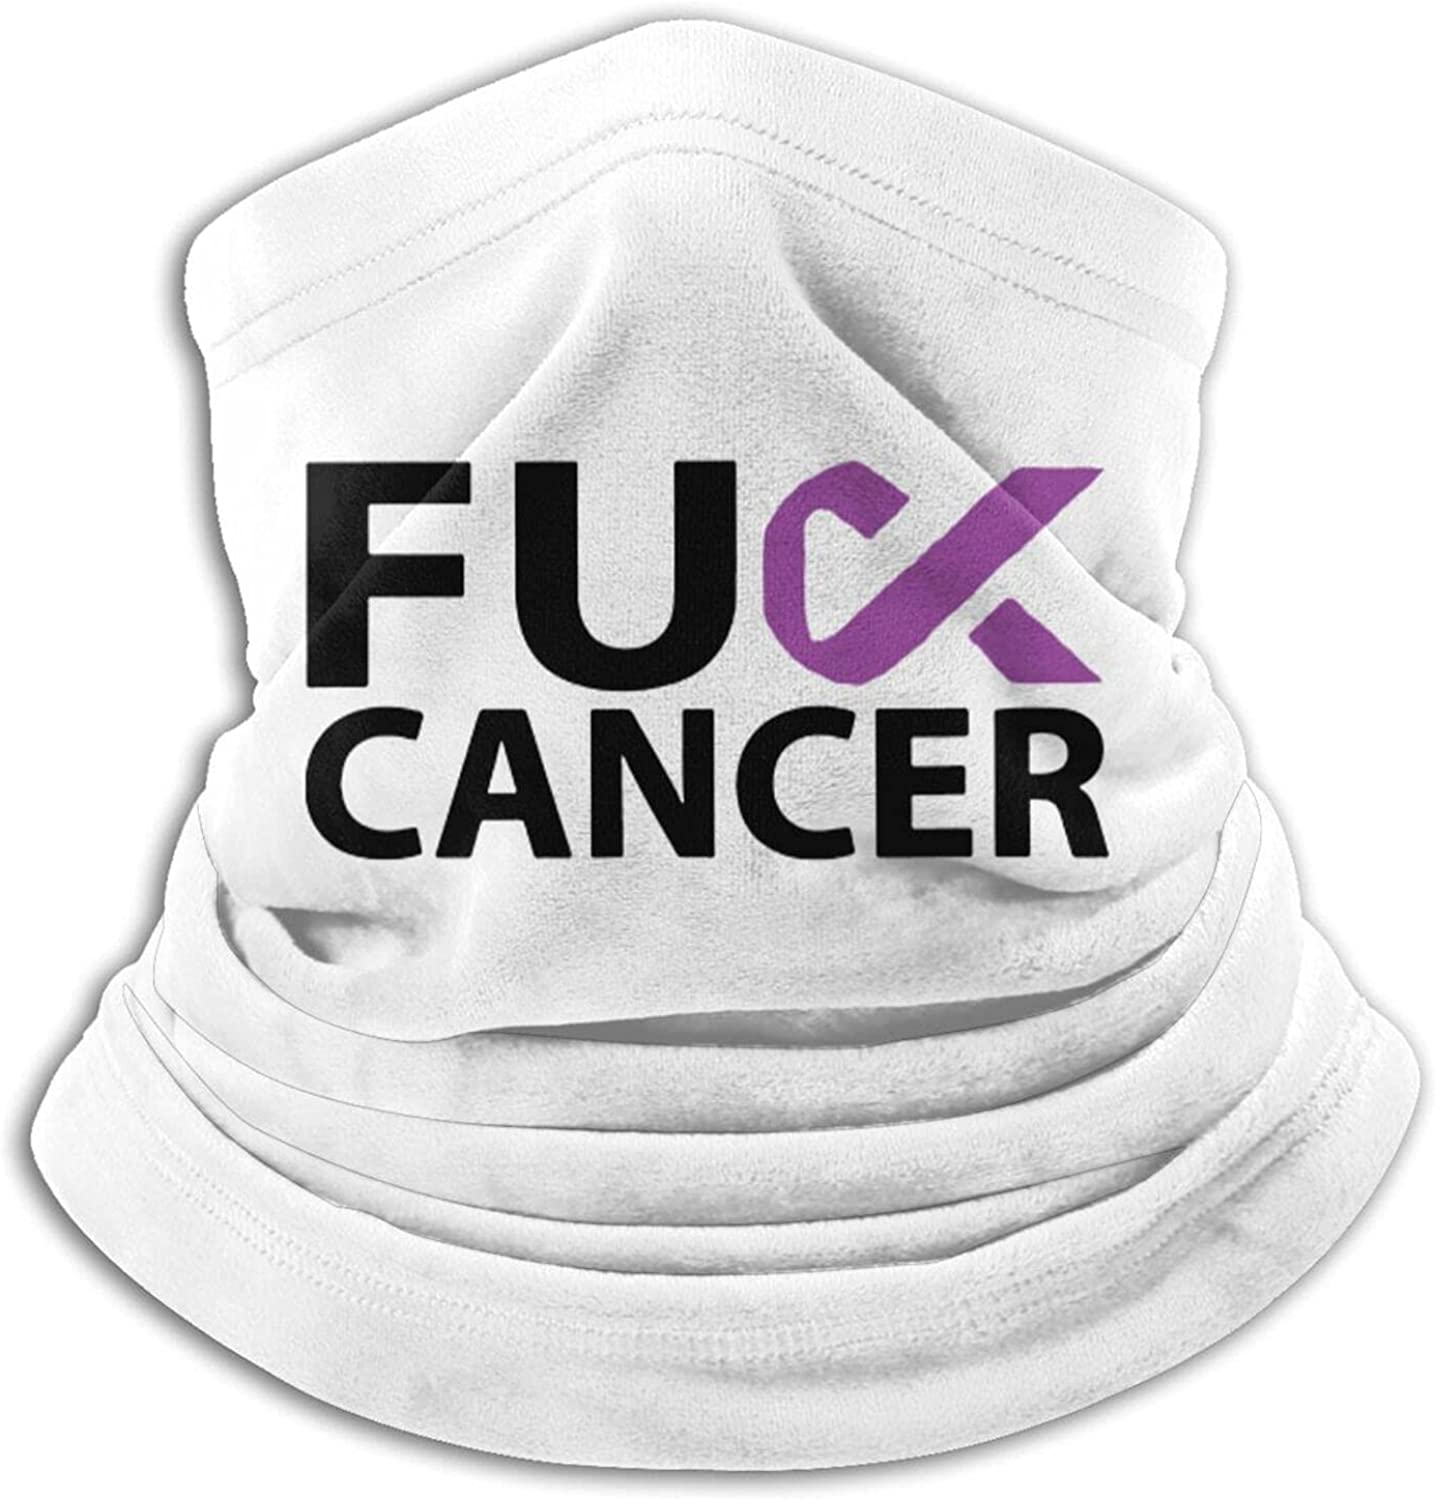 Pancreatic cancer awareness purple ribbon unisex winter neck gaiter face cover mask, windproof balaclava scarf for fishing, running & hiking